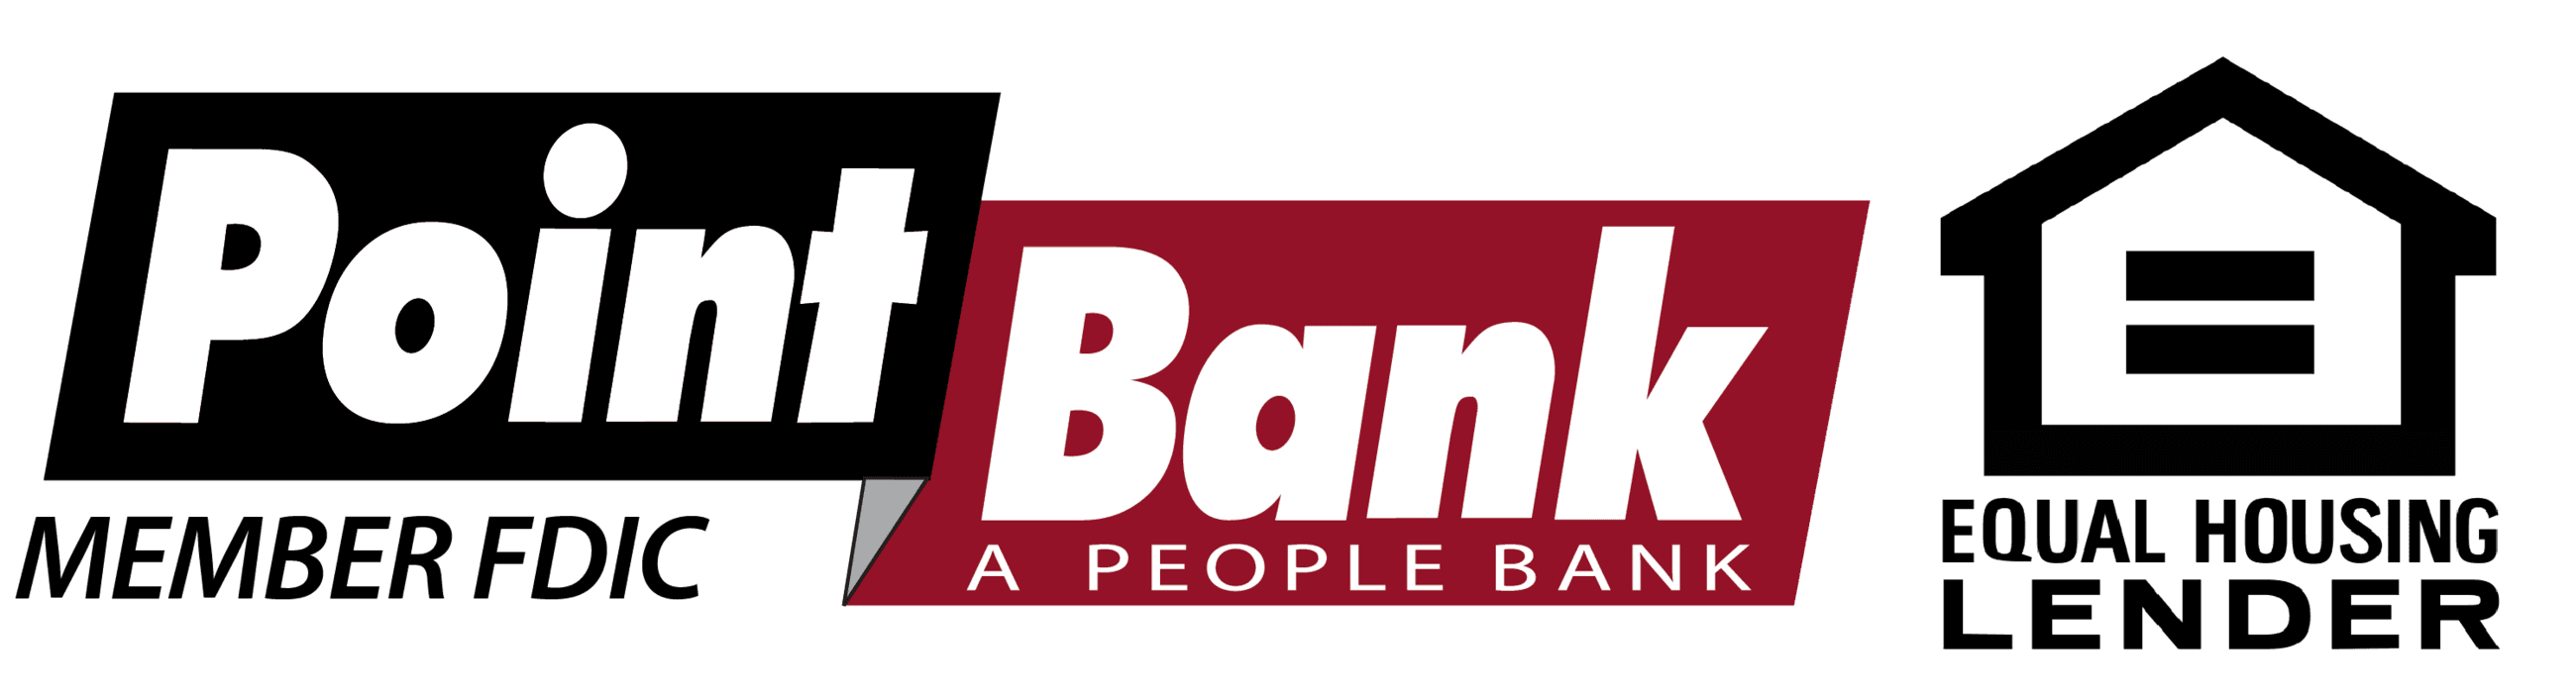 POINTBANK_PeopleBank_bigFDIC with EHL-02-01